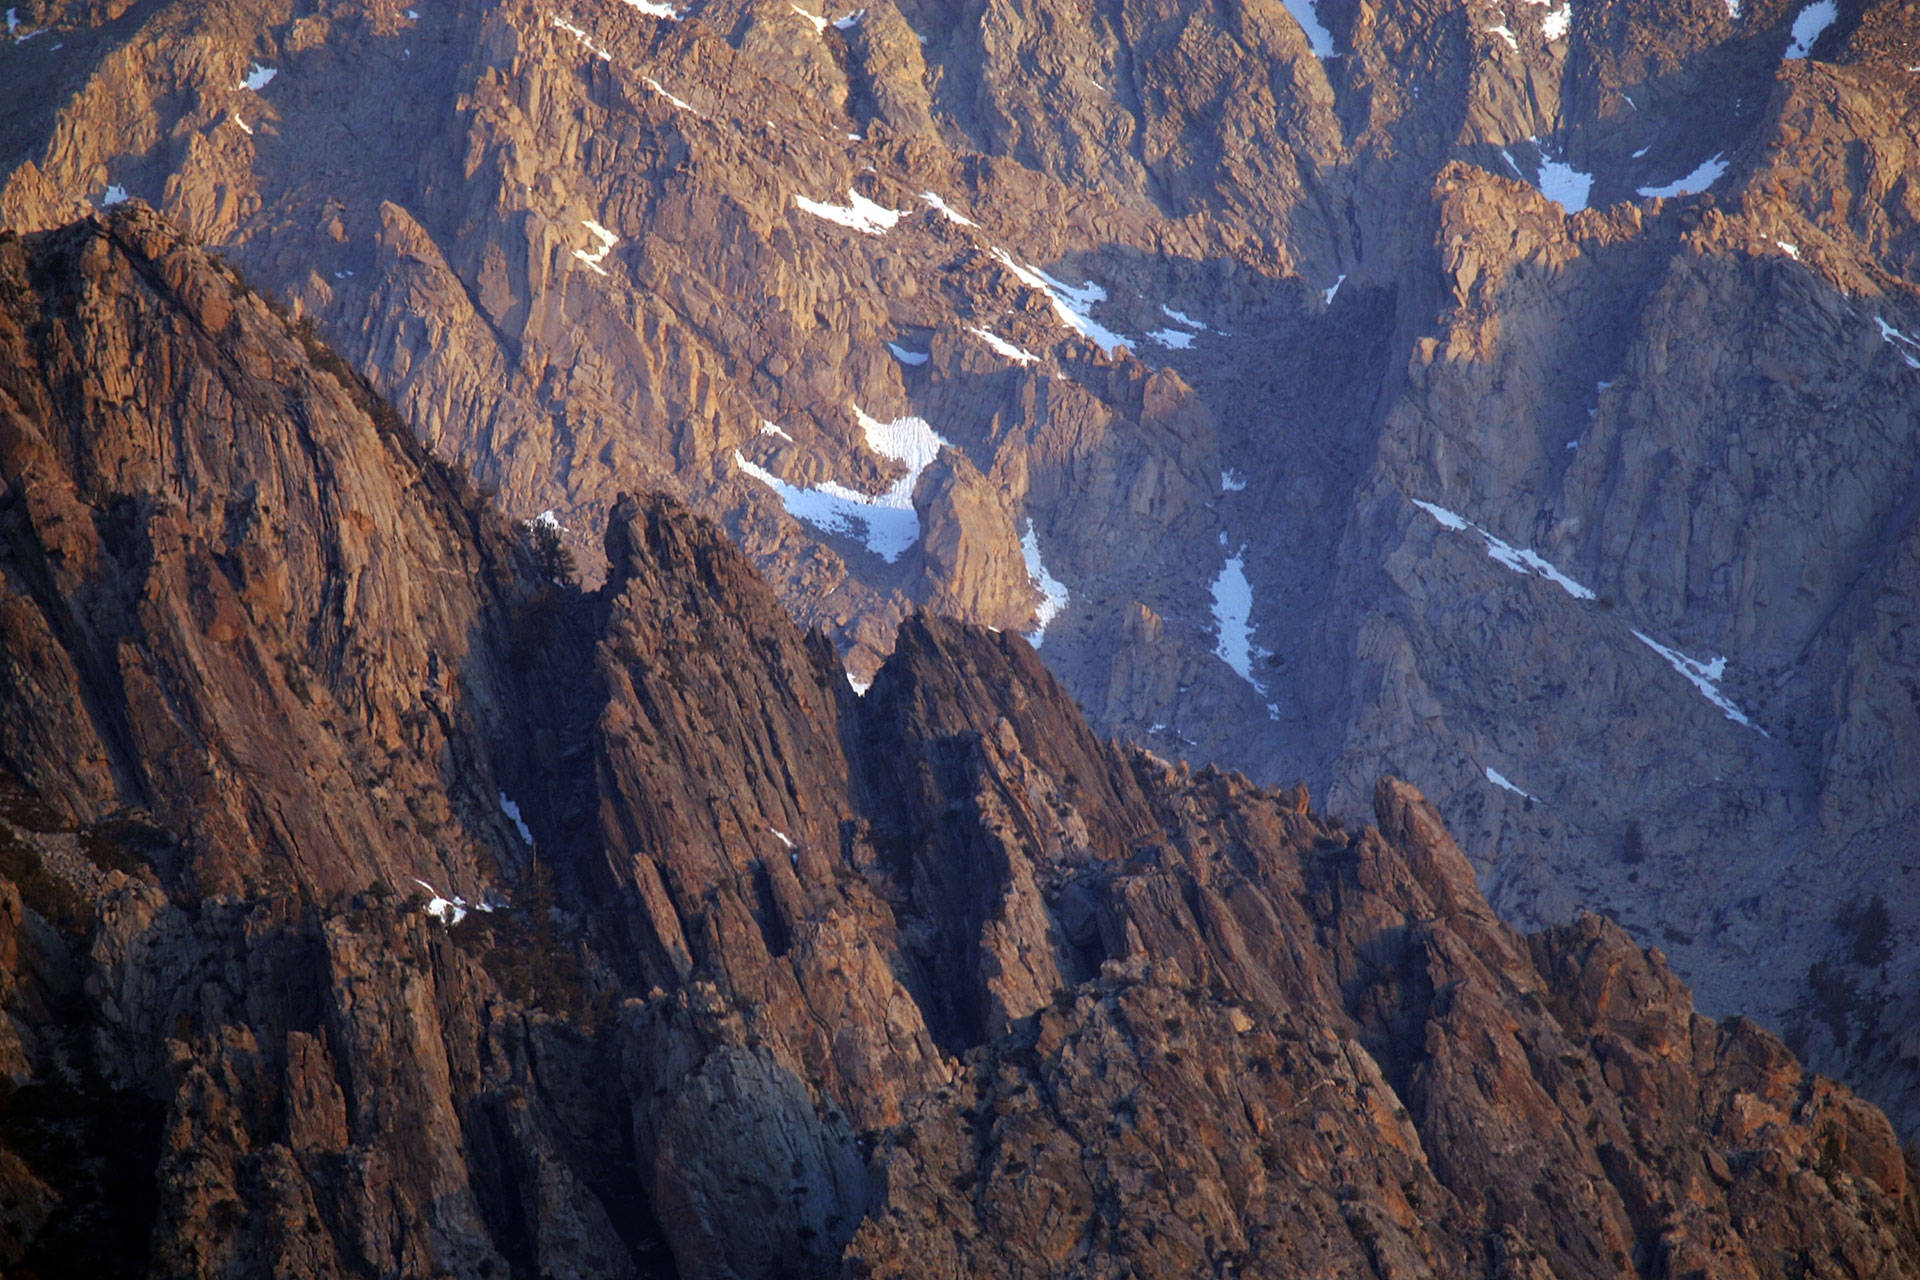 Alpine crags rise north of Mount Whitney in the Sierra Nevada. David McNew/Getty Images